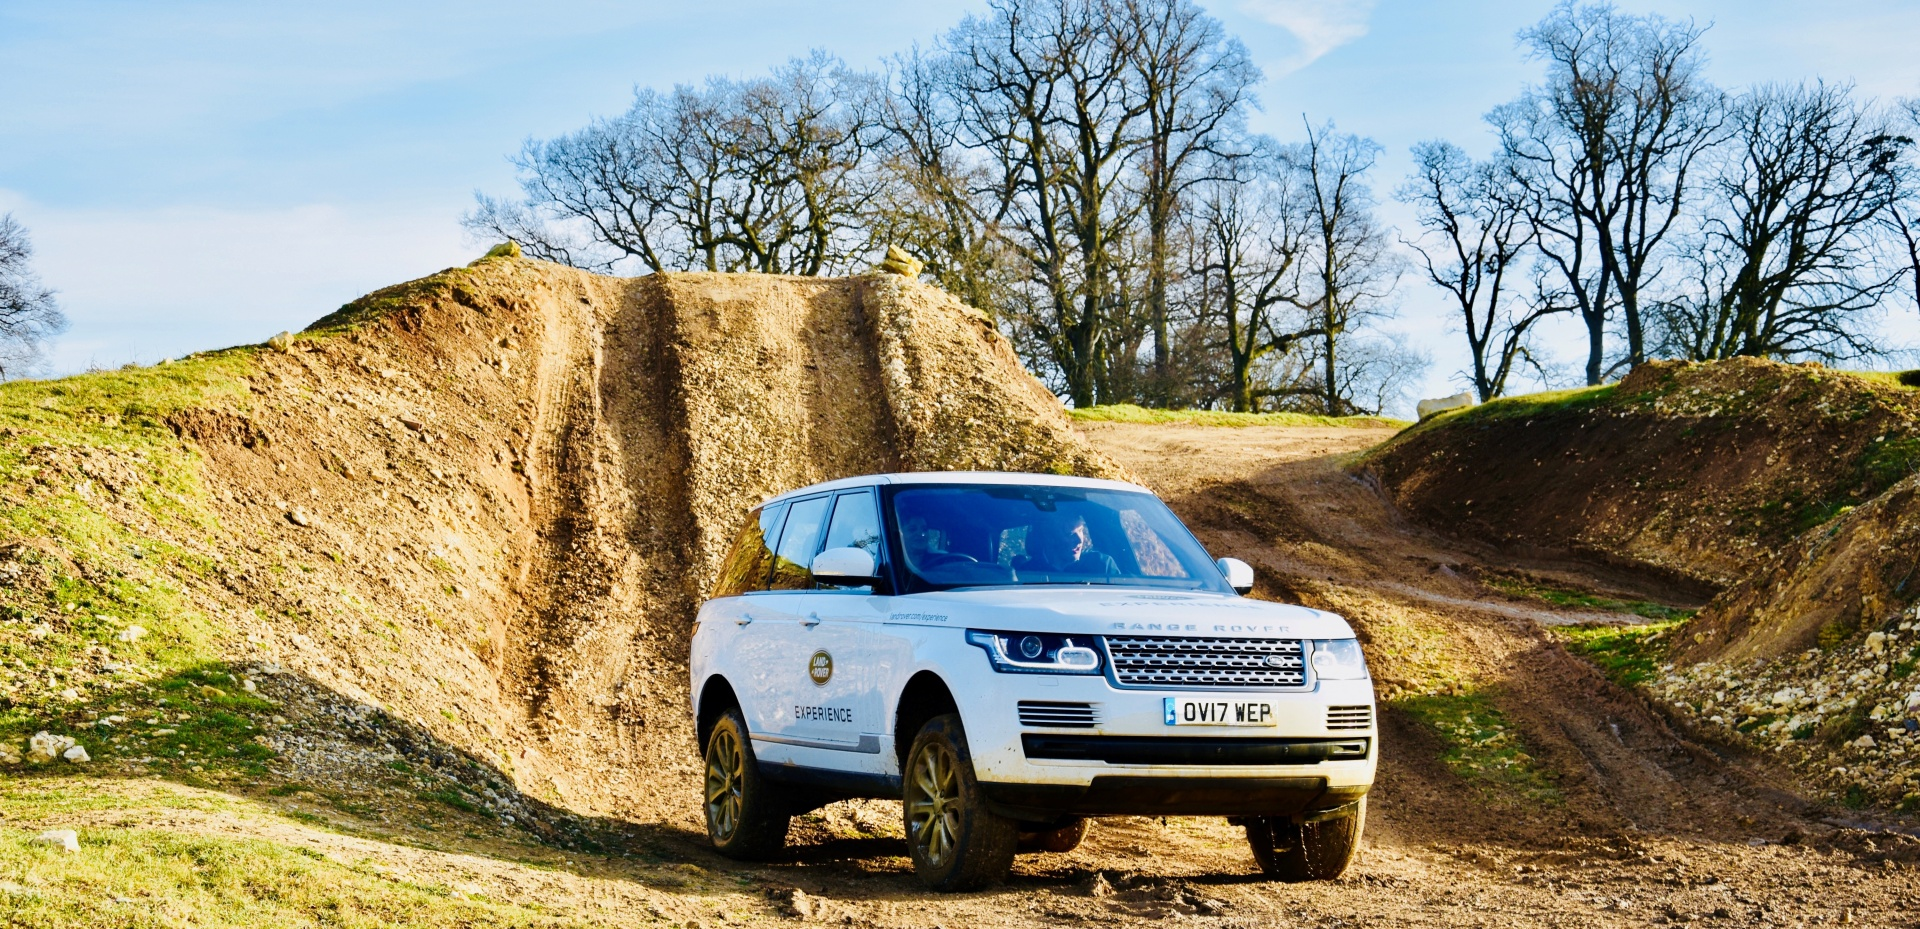 Full Day Land Rover Experience-9